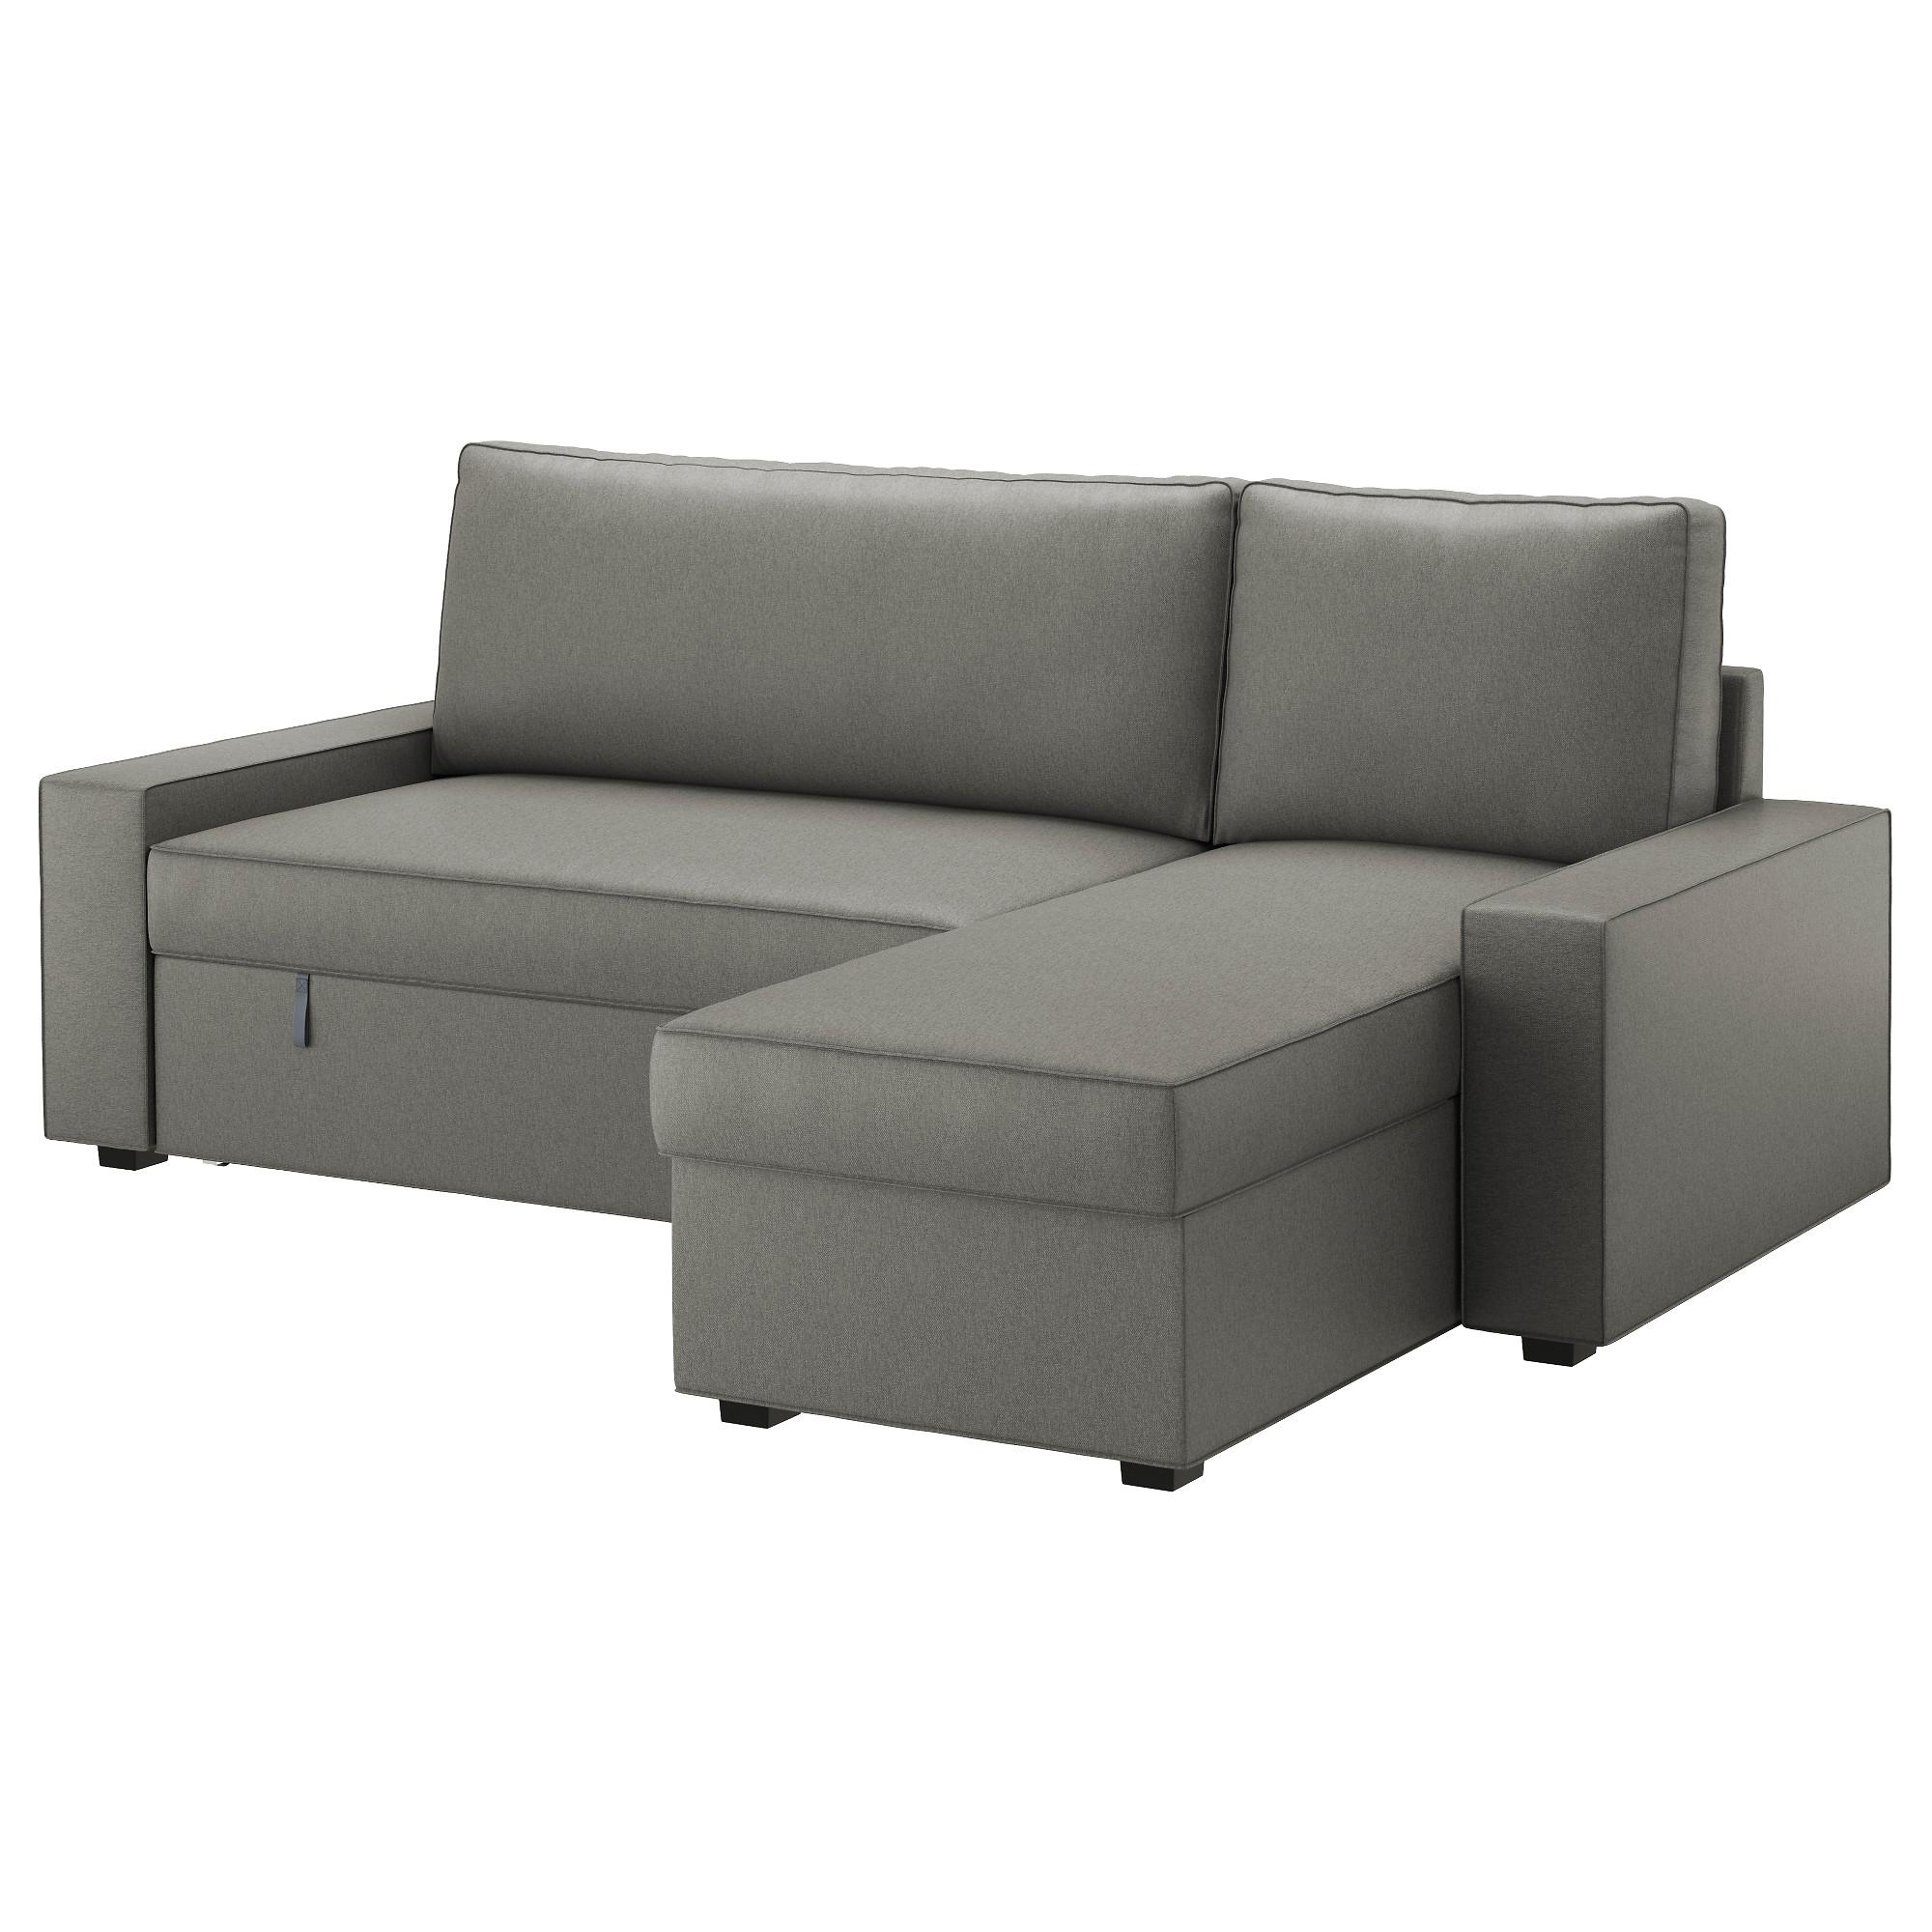 Sofa Bed Ebay Sydney: 20 Best Ideas Chaise Longue Sofa Beds